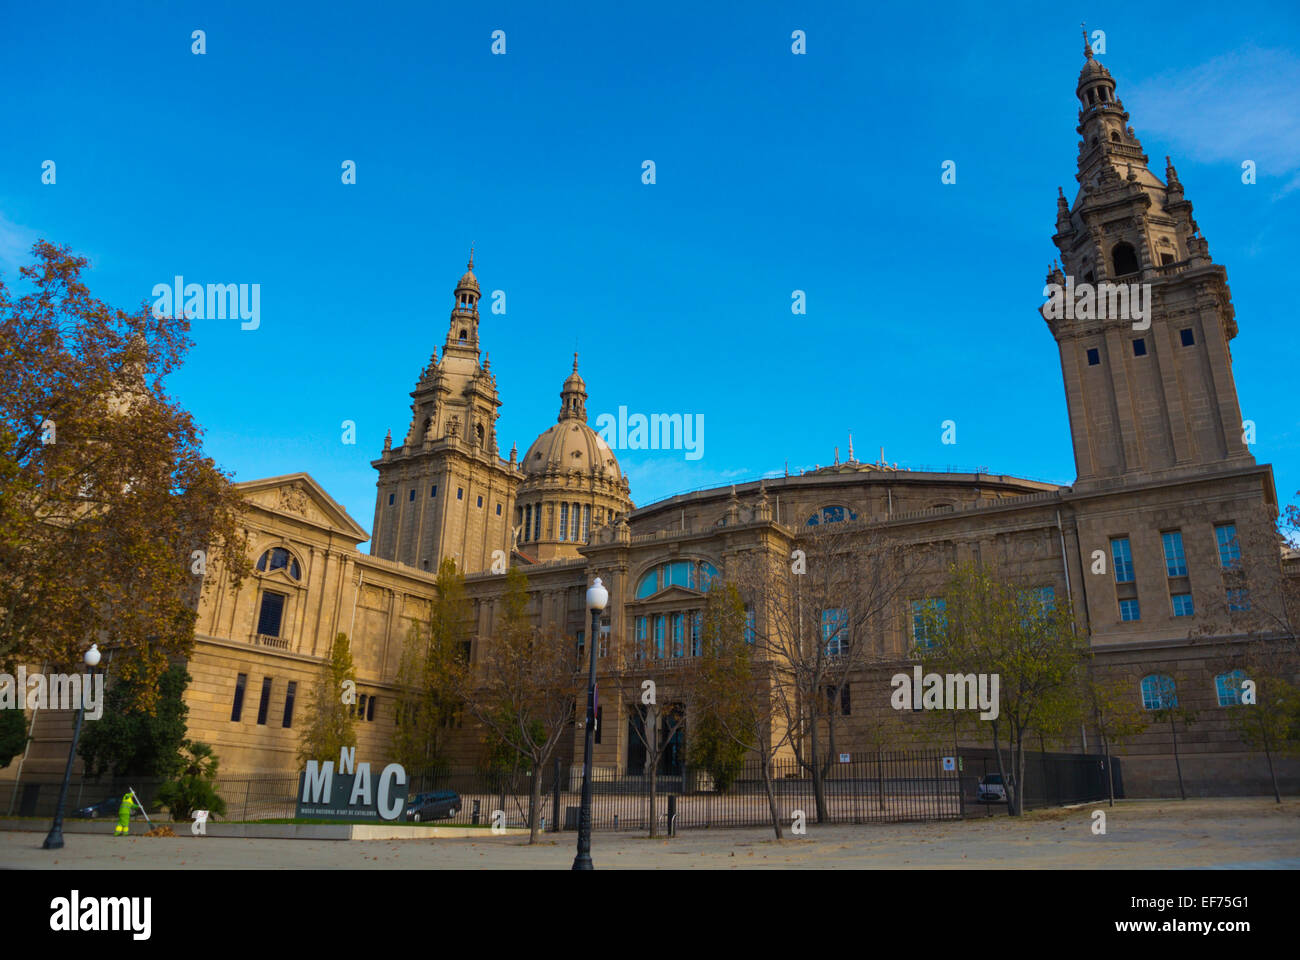 MNAC, Museum of Catalonian Art, Montjuic, Barcelona, Spain - Stock Image